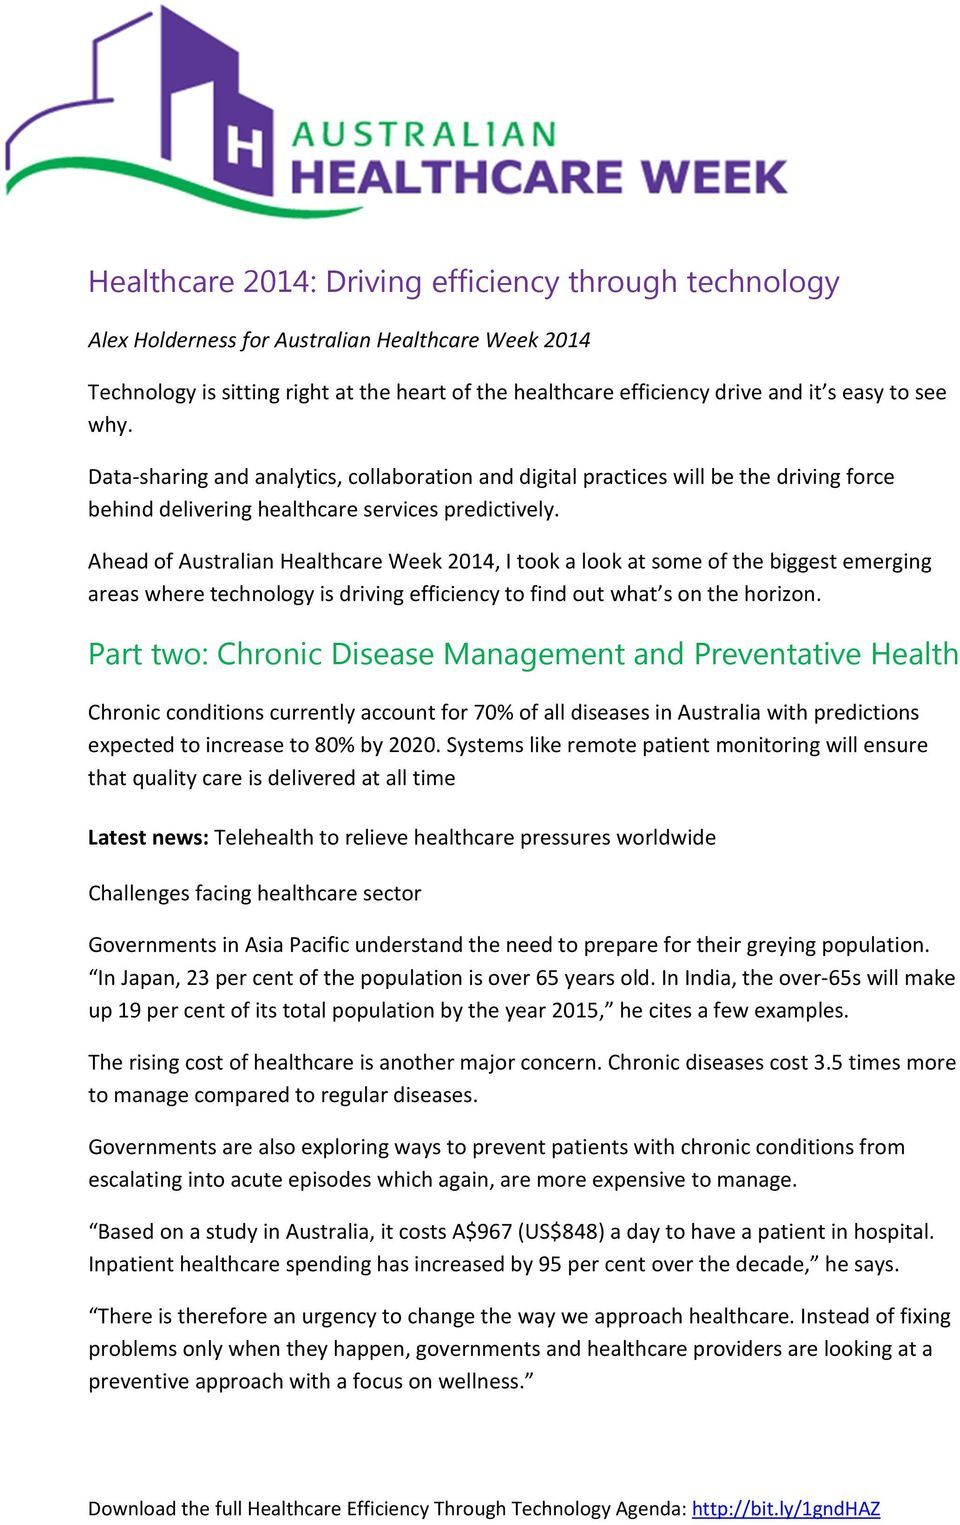 Ahead of Australian Healthcare Week 2014, I took a look at some of the biggest emerging areas where technology is driving efficiency to find out what s on the horizon.